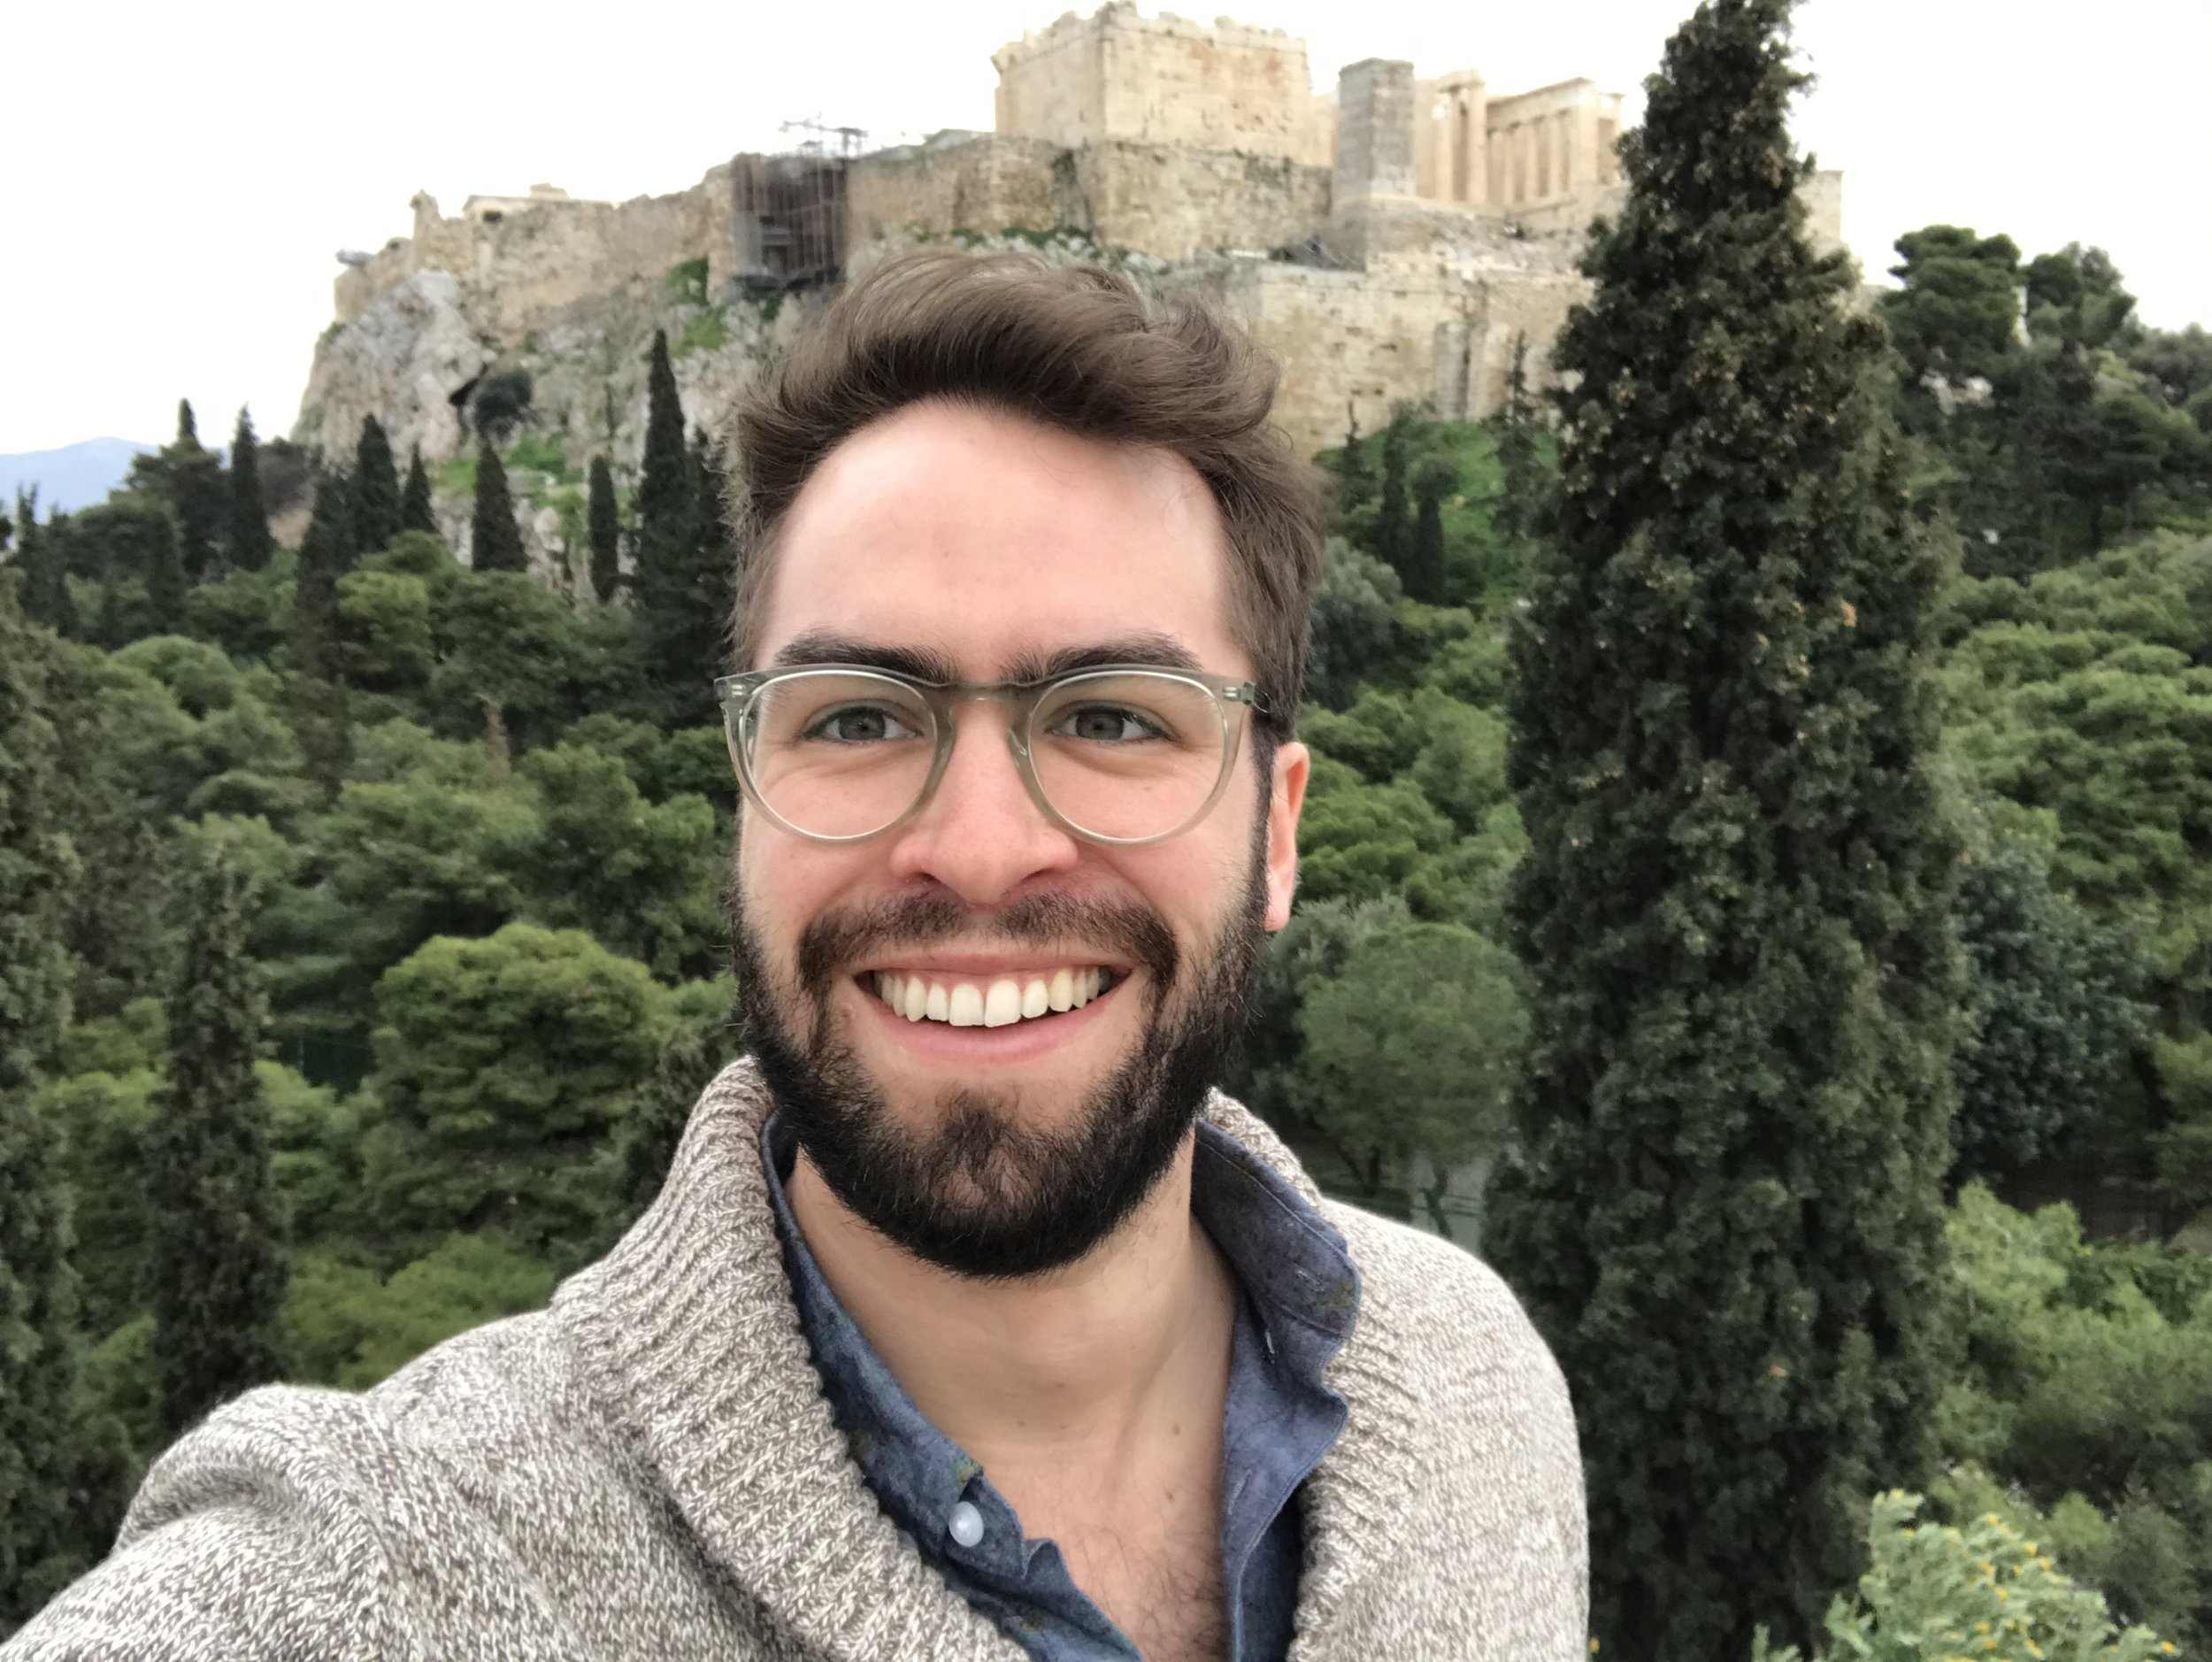 In 2019, on the Areopagus, still figuring out selfies